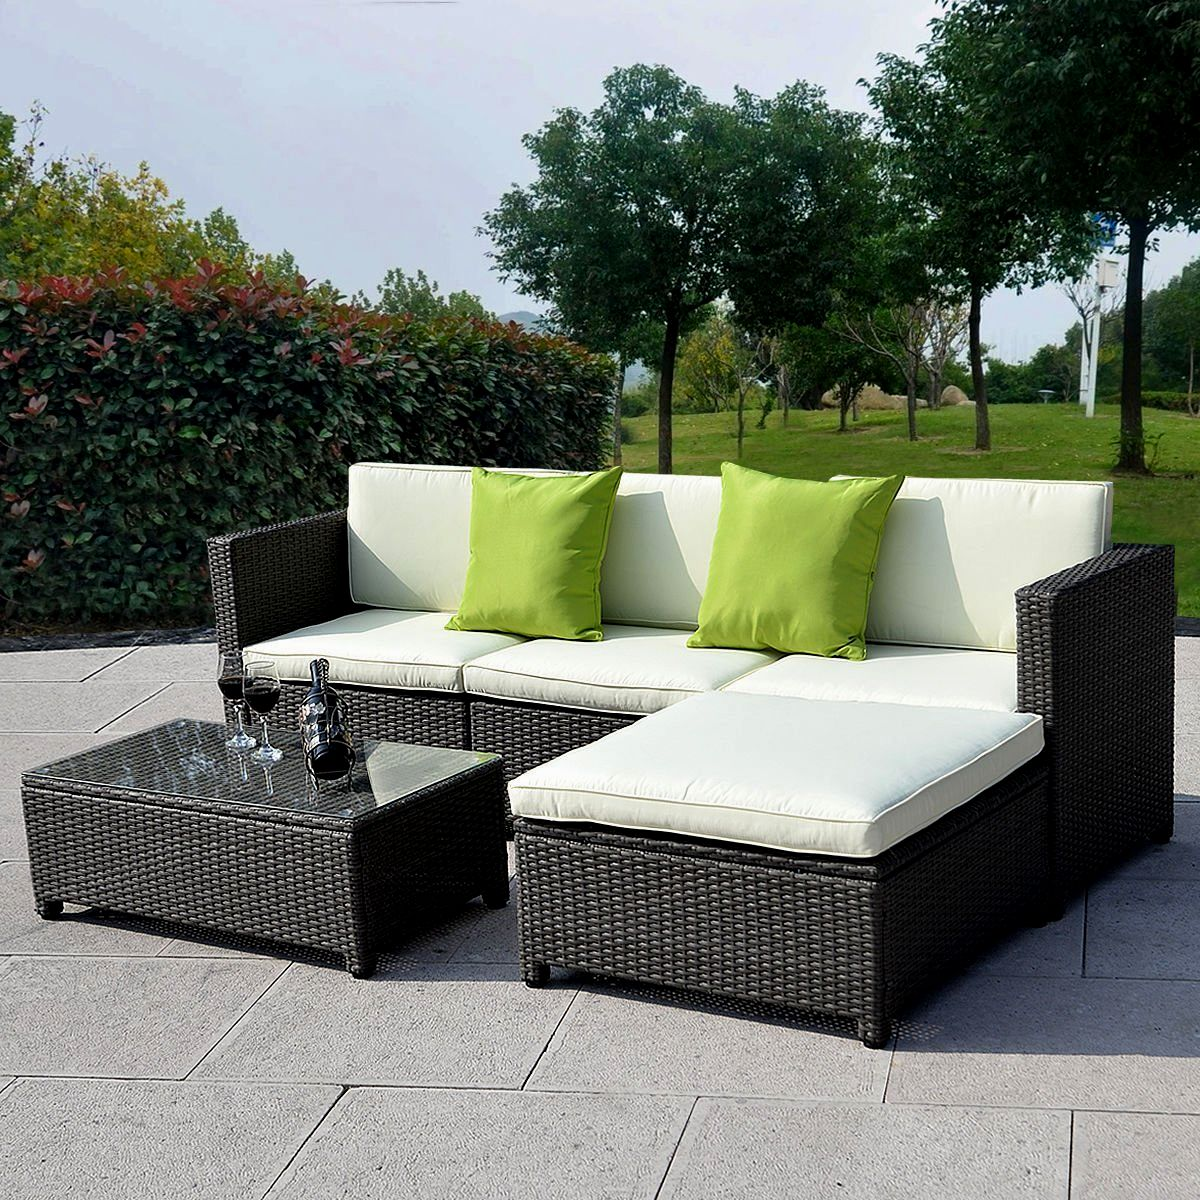 lovely outdoor sofa sale layout-Top Outdoor sofa Sale Layout